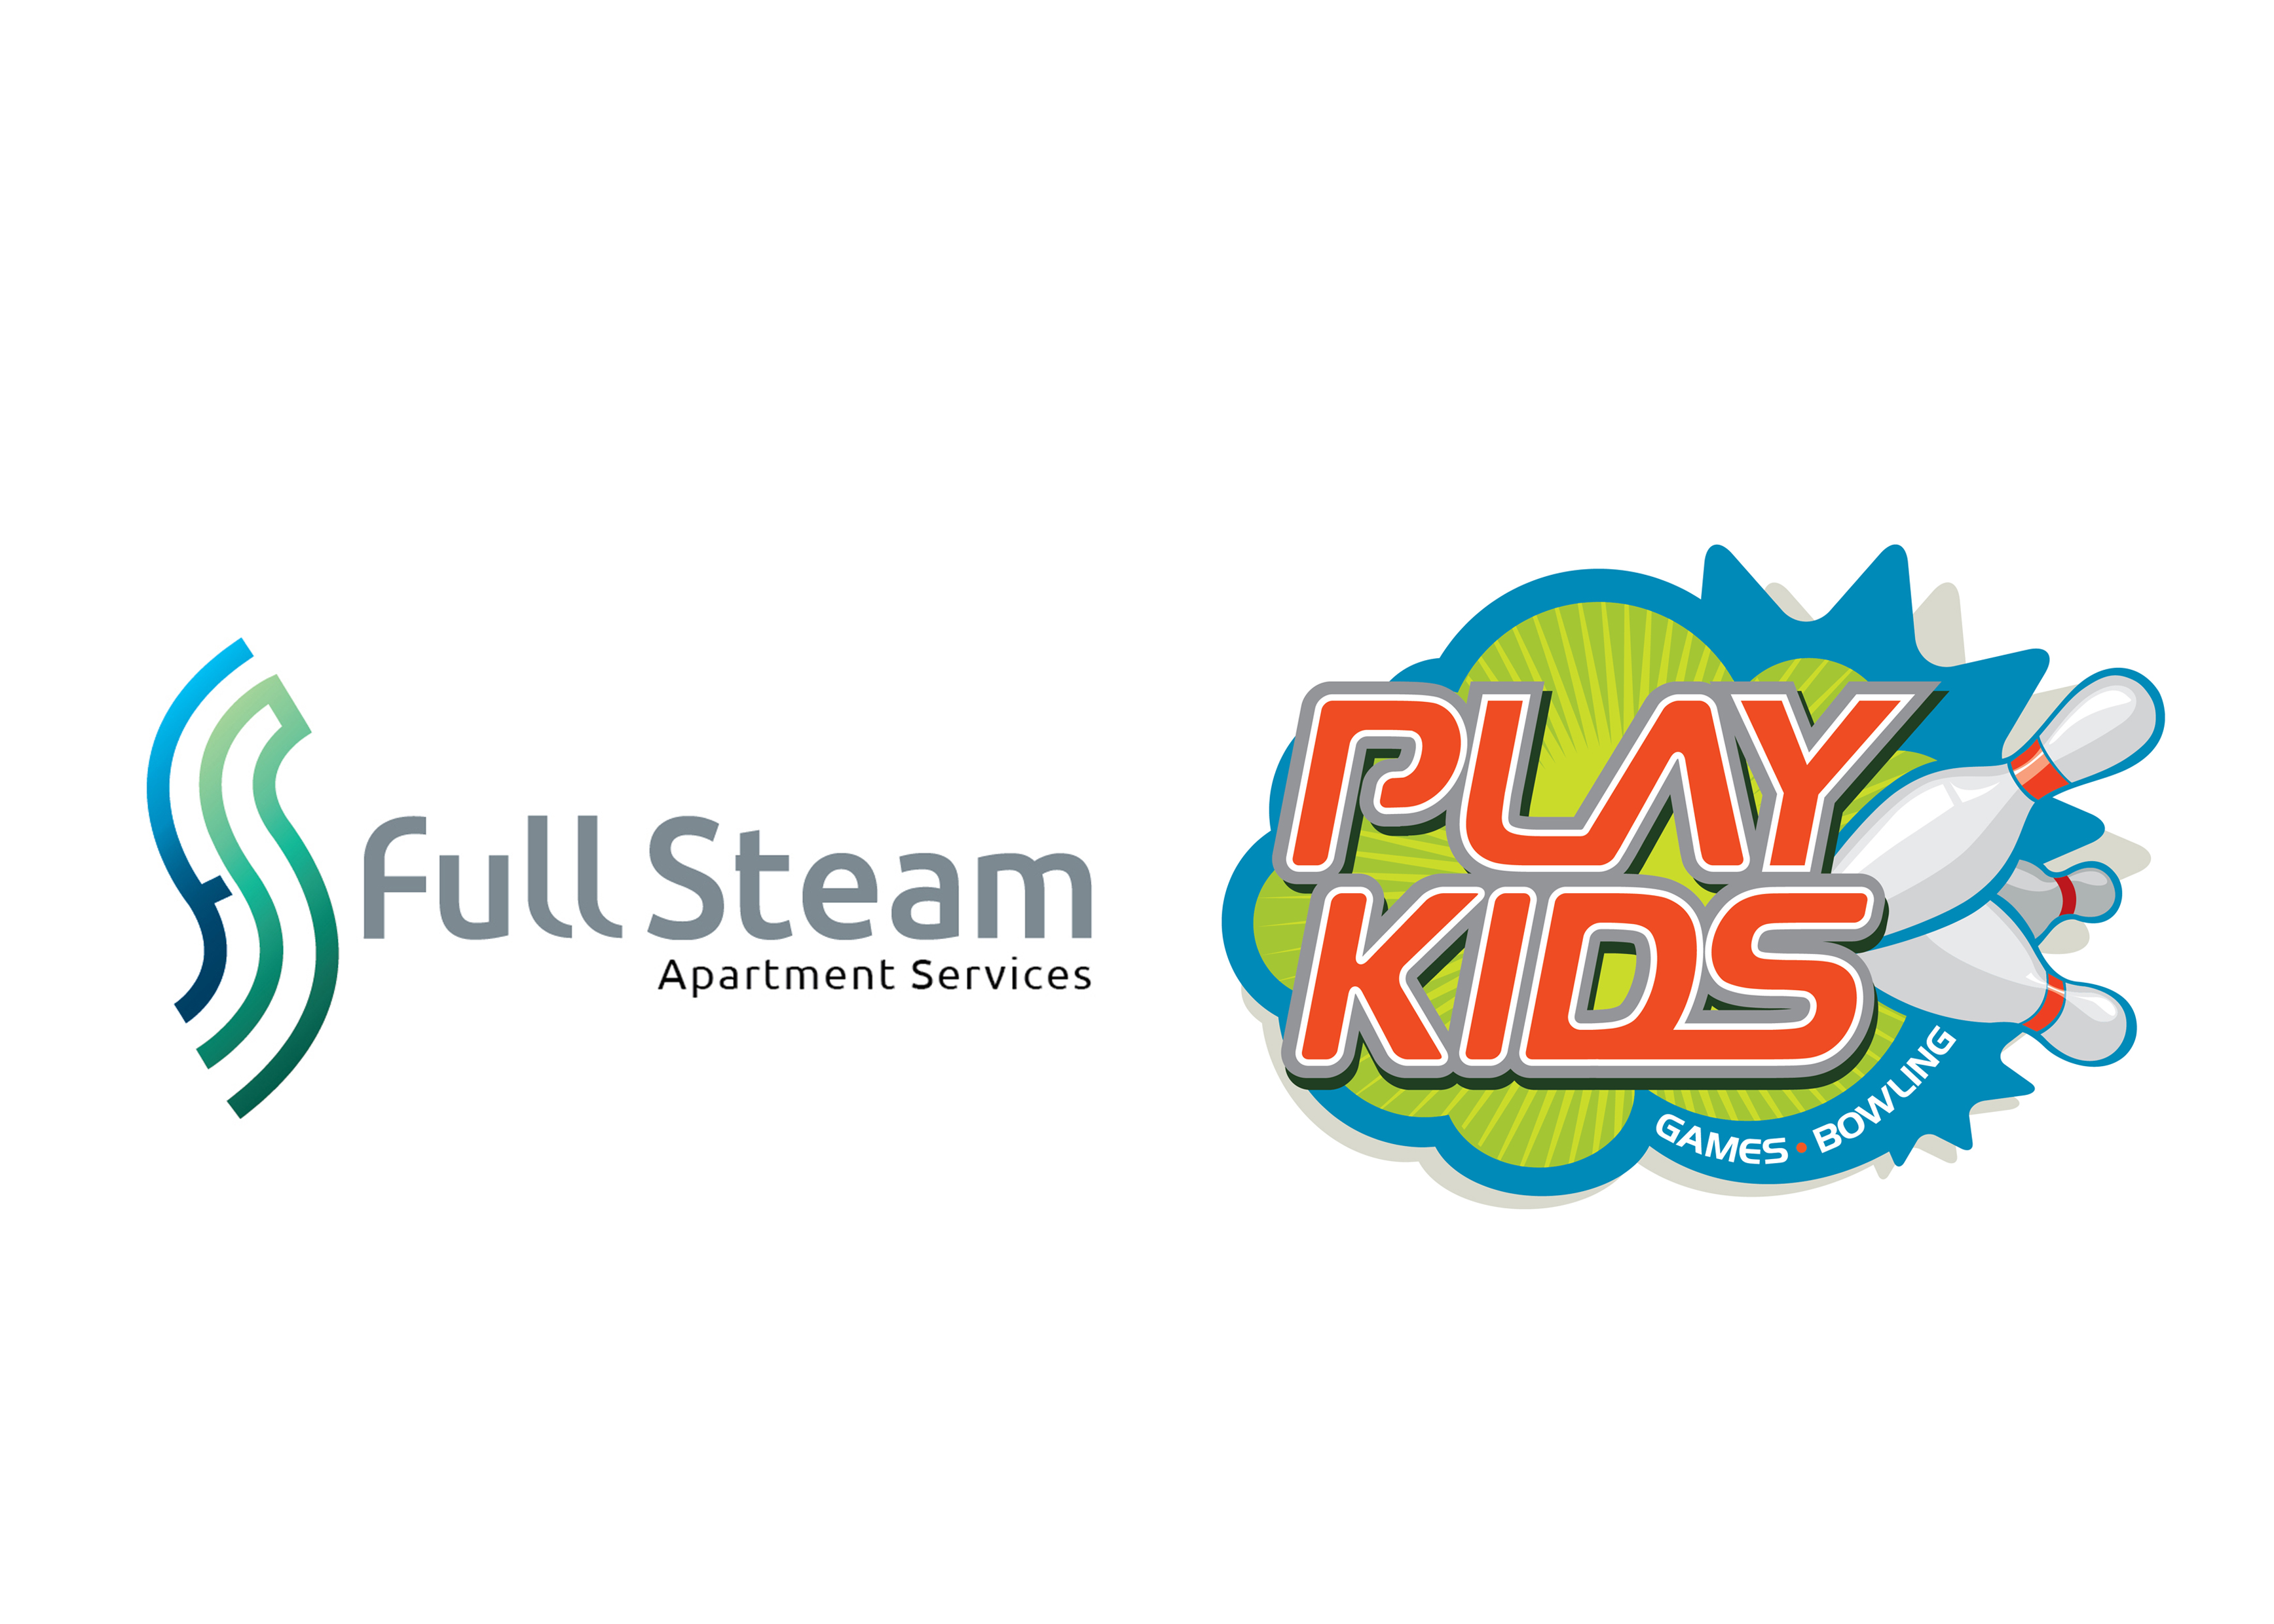 logo full steam e play kids.jpg